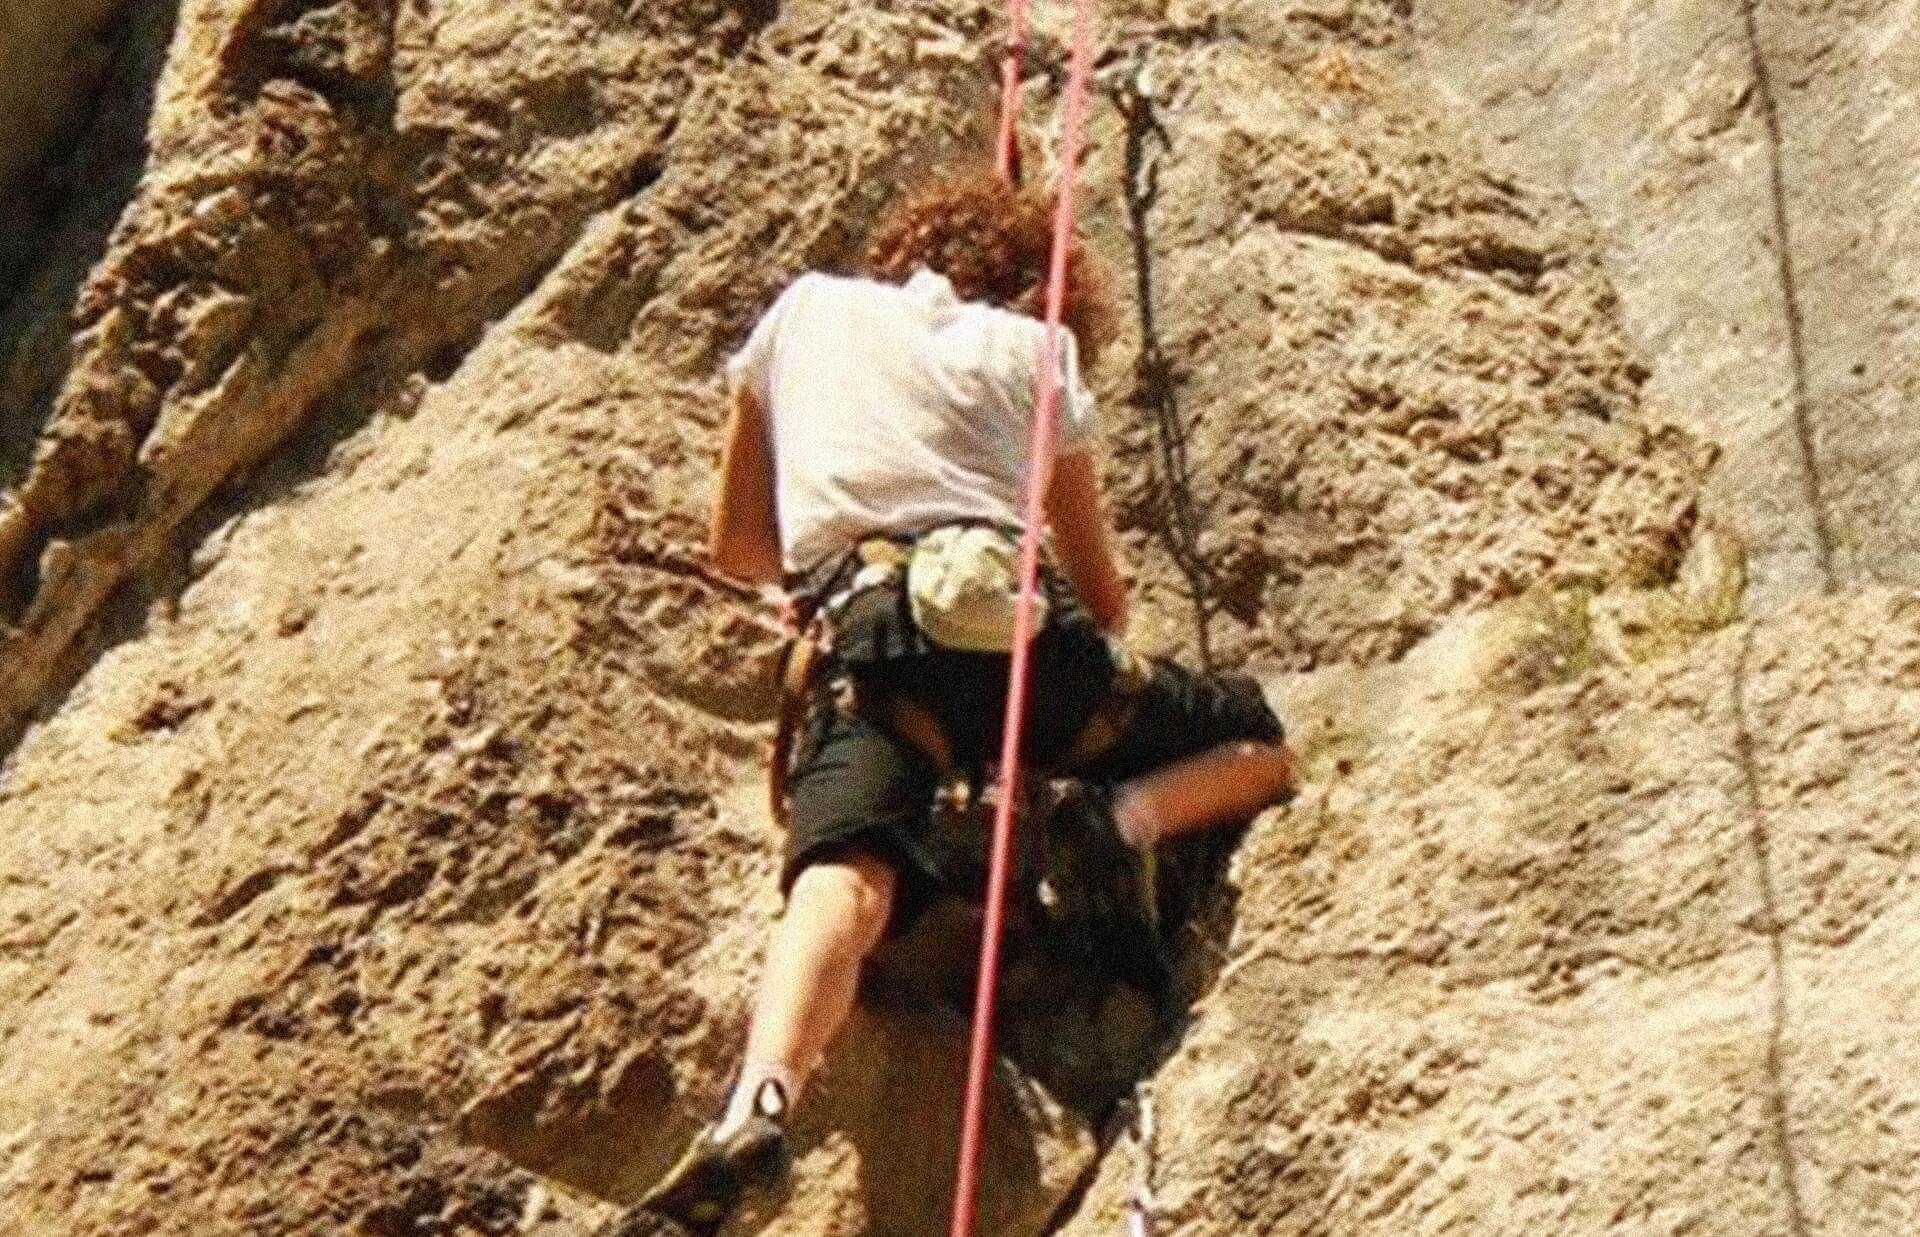 Himachal Manali Rock climbing Rappelling Adventure